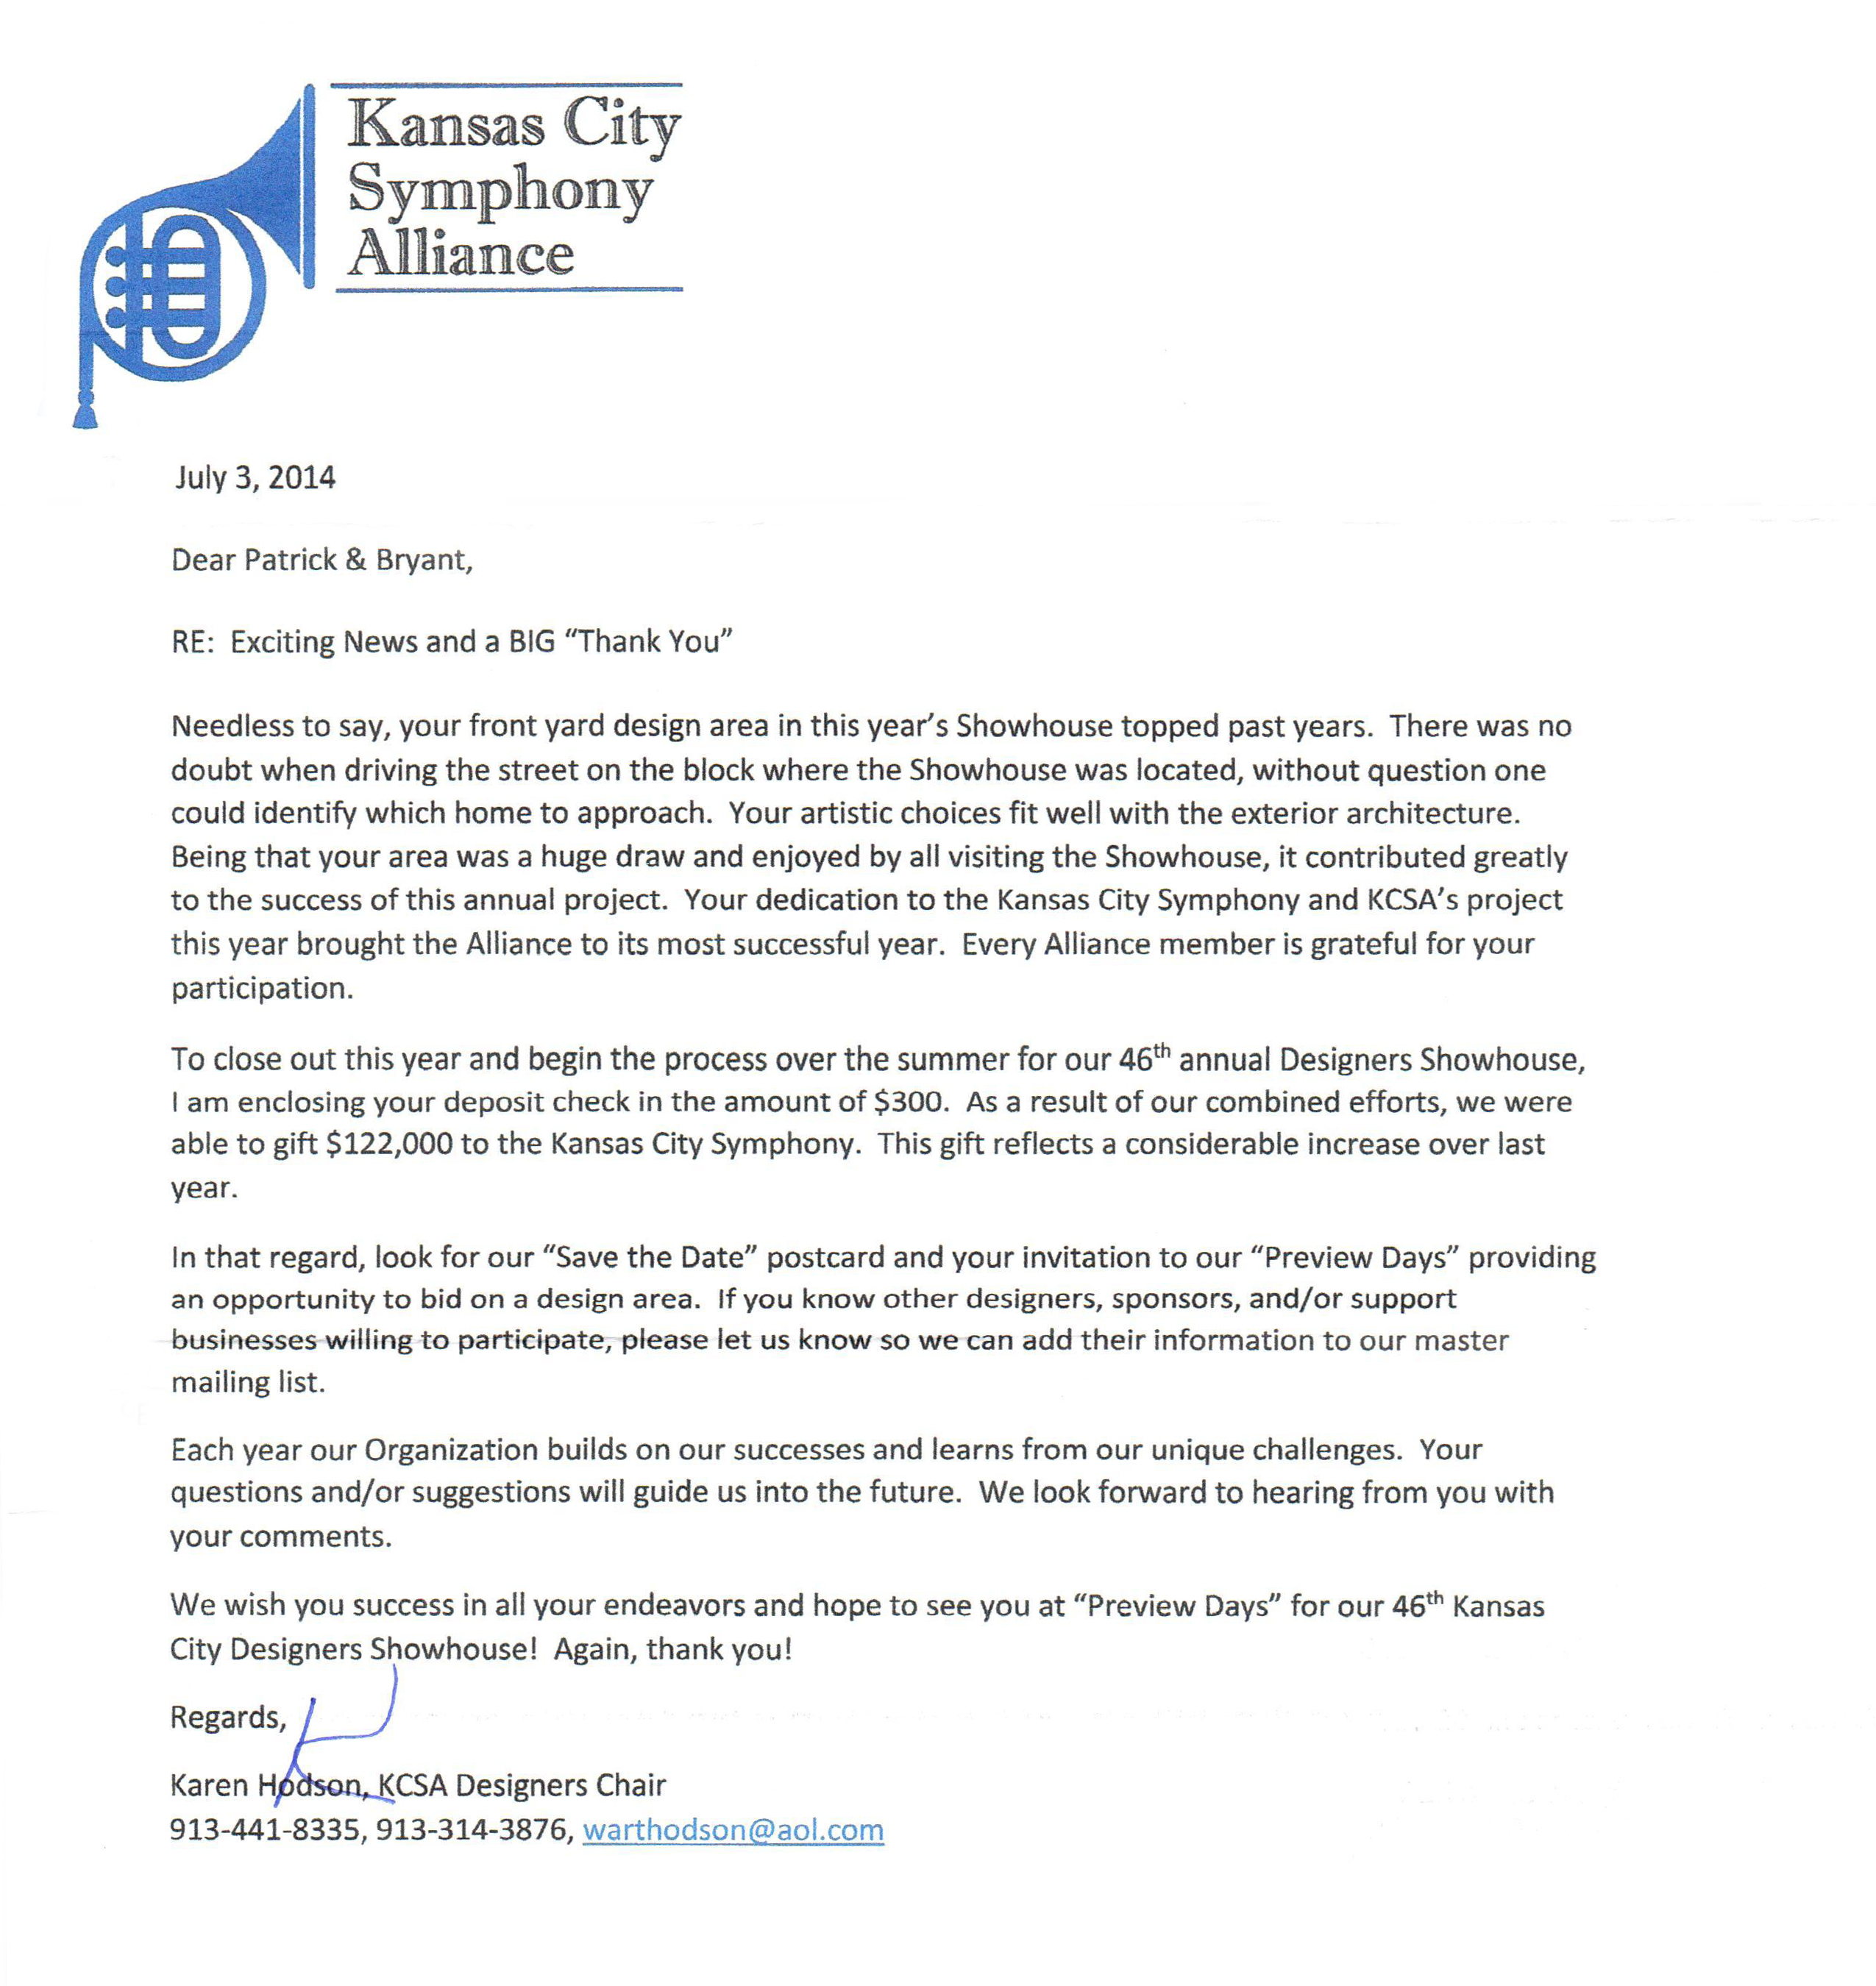 Kansas City Symphony Alliance Thank You Letter